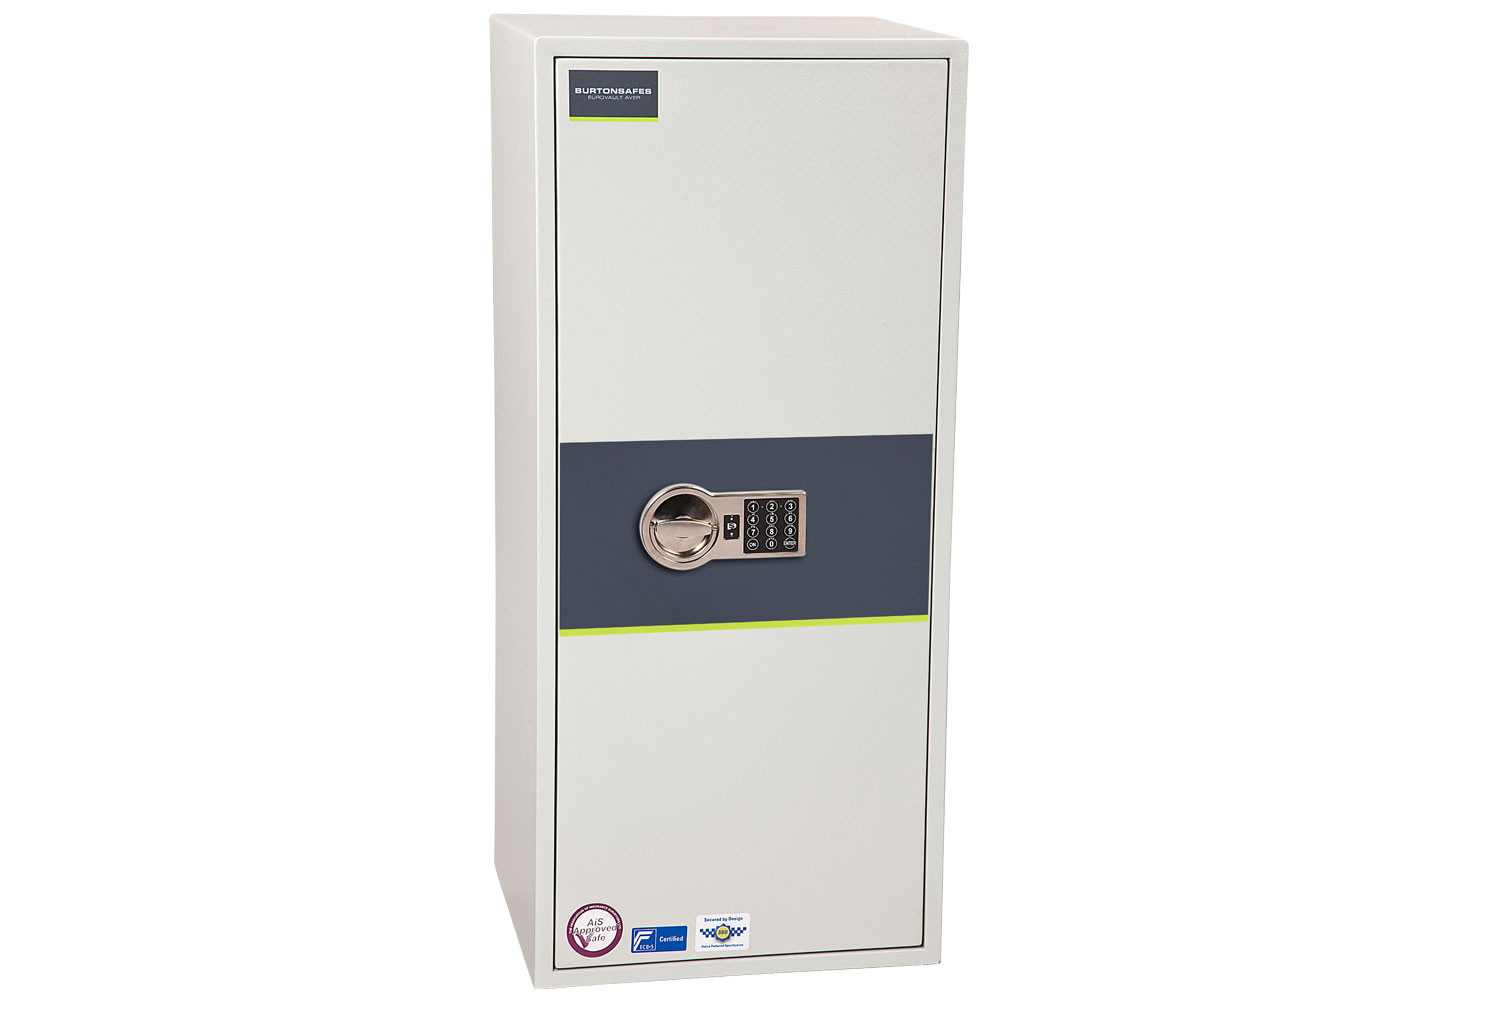 Burton Eurovault Aver S2 Size 6 Safe With Electric Lock (99ltrs)